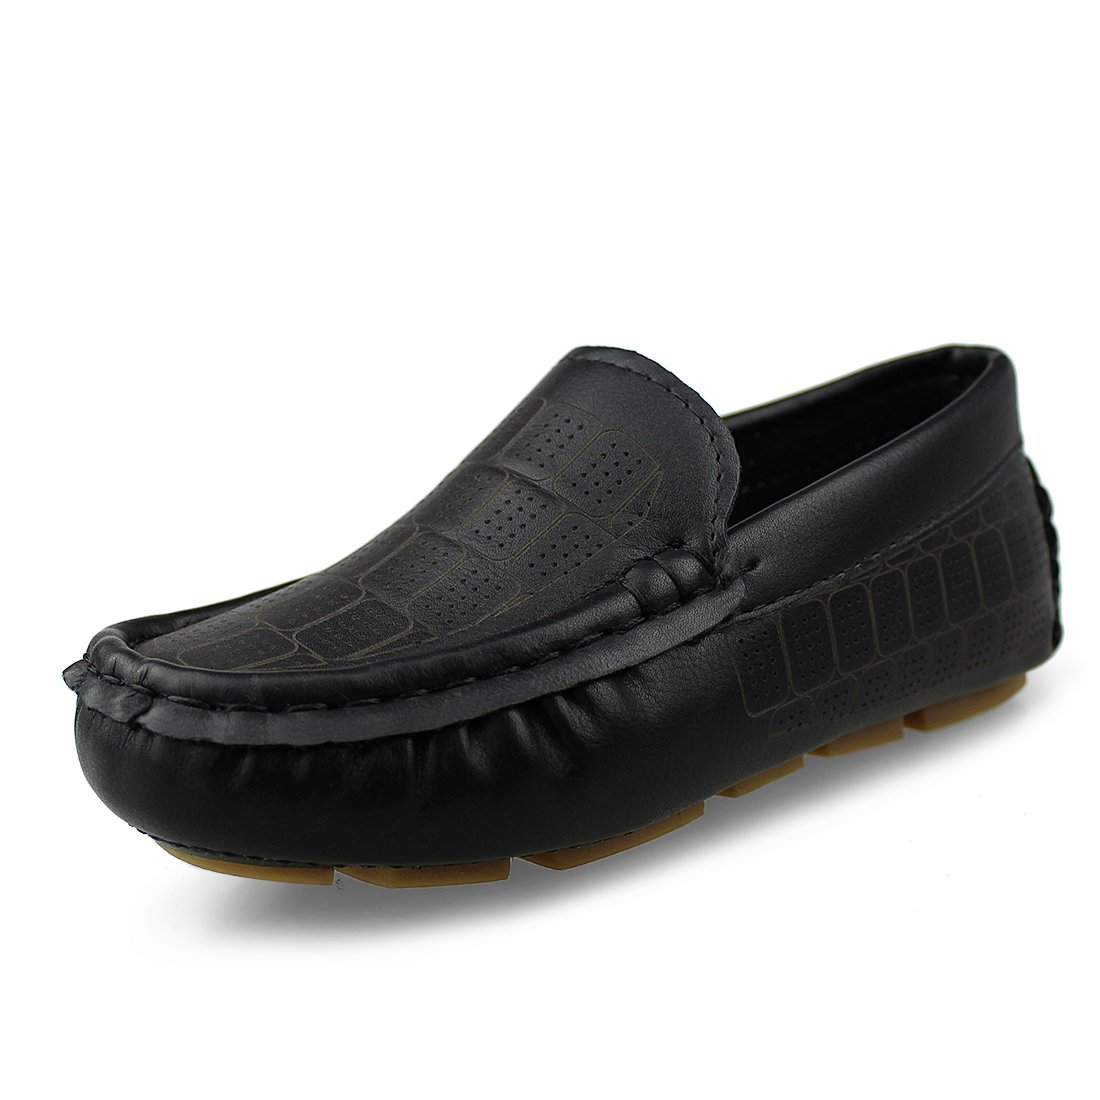 Hawkwell Kids Loafer Moccasin Oxford Driver Shoes(Toddler/Little Kid/Big Kid),Black PU,9.5 M US